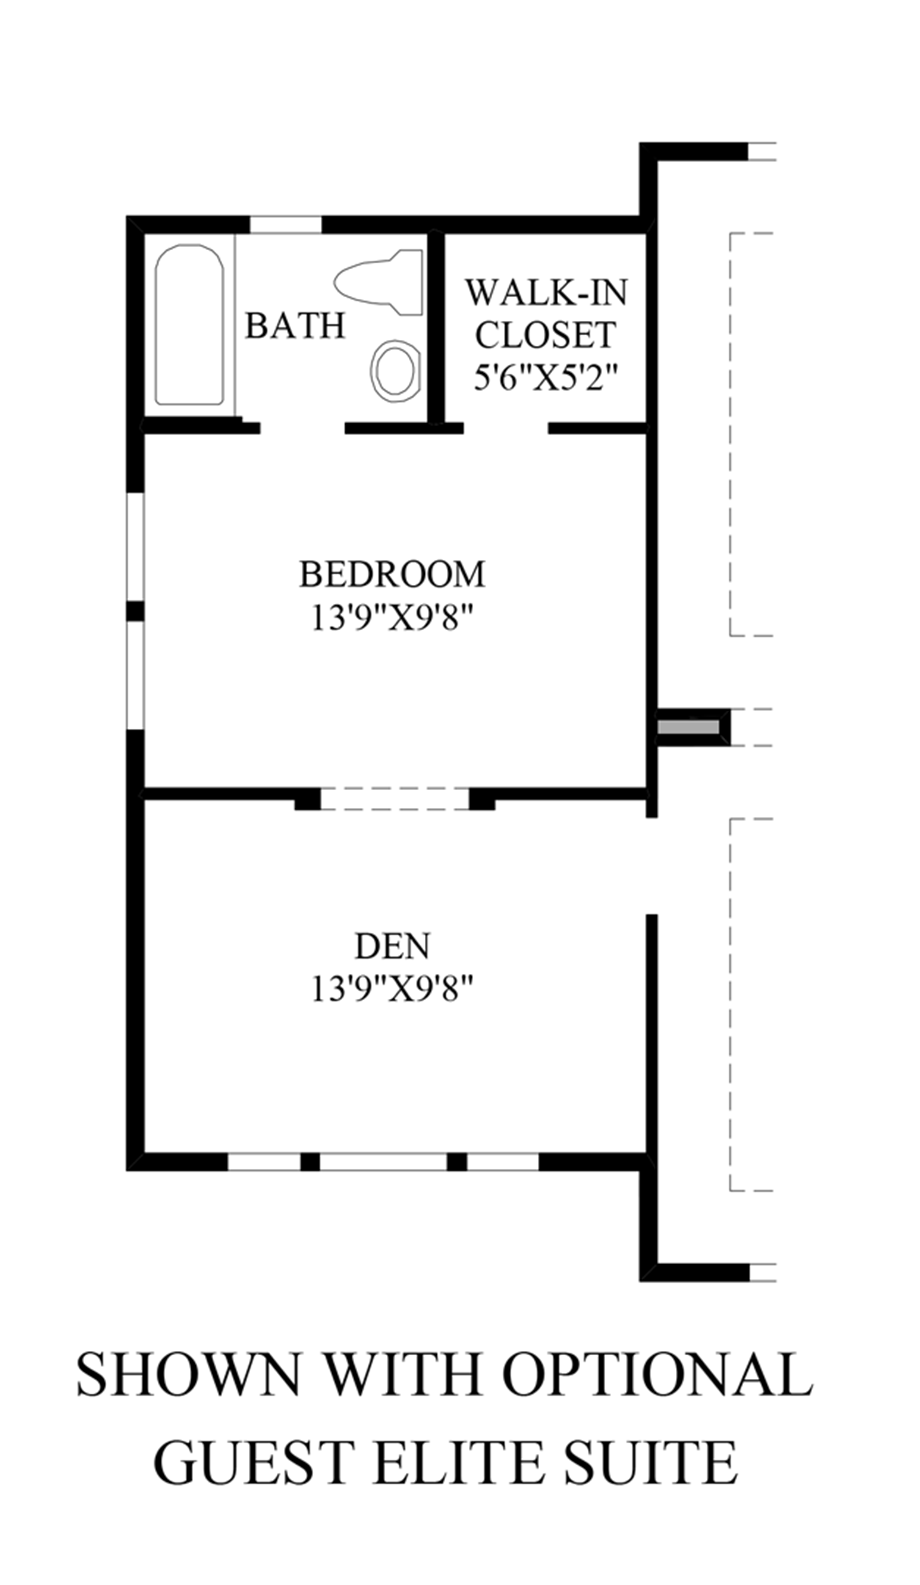 Optional Guest Elite Suite Floor Plan